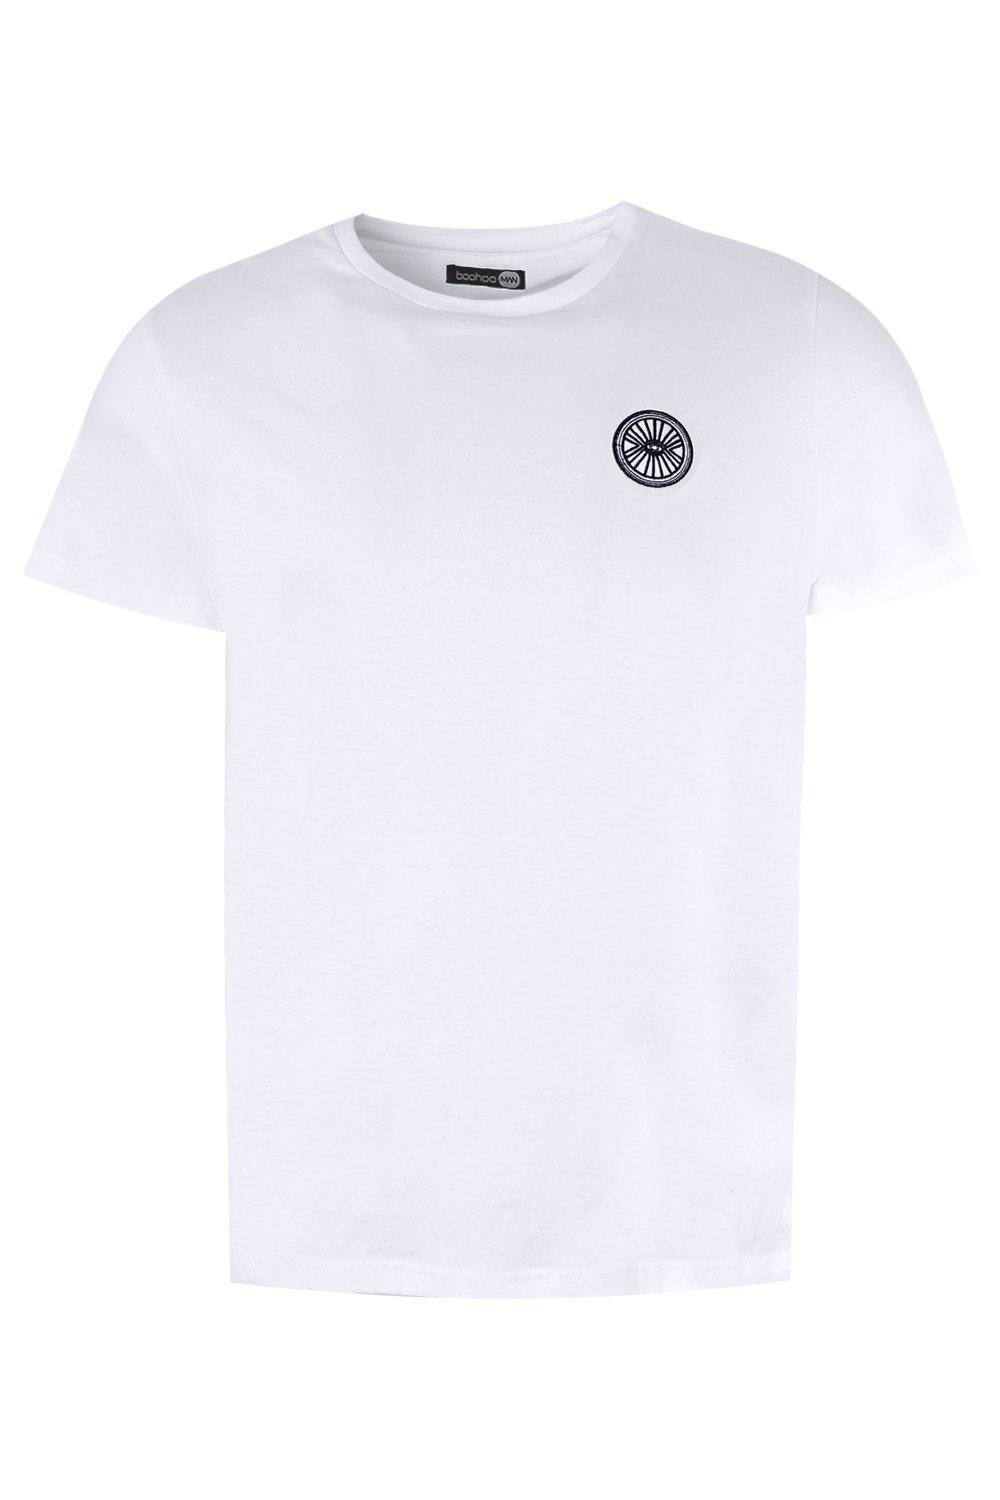 boohooMAN white Circle Eye Embroidered T-Shirt